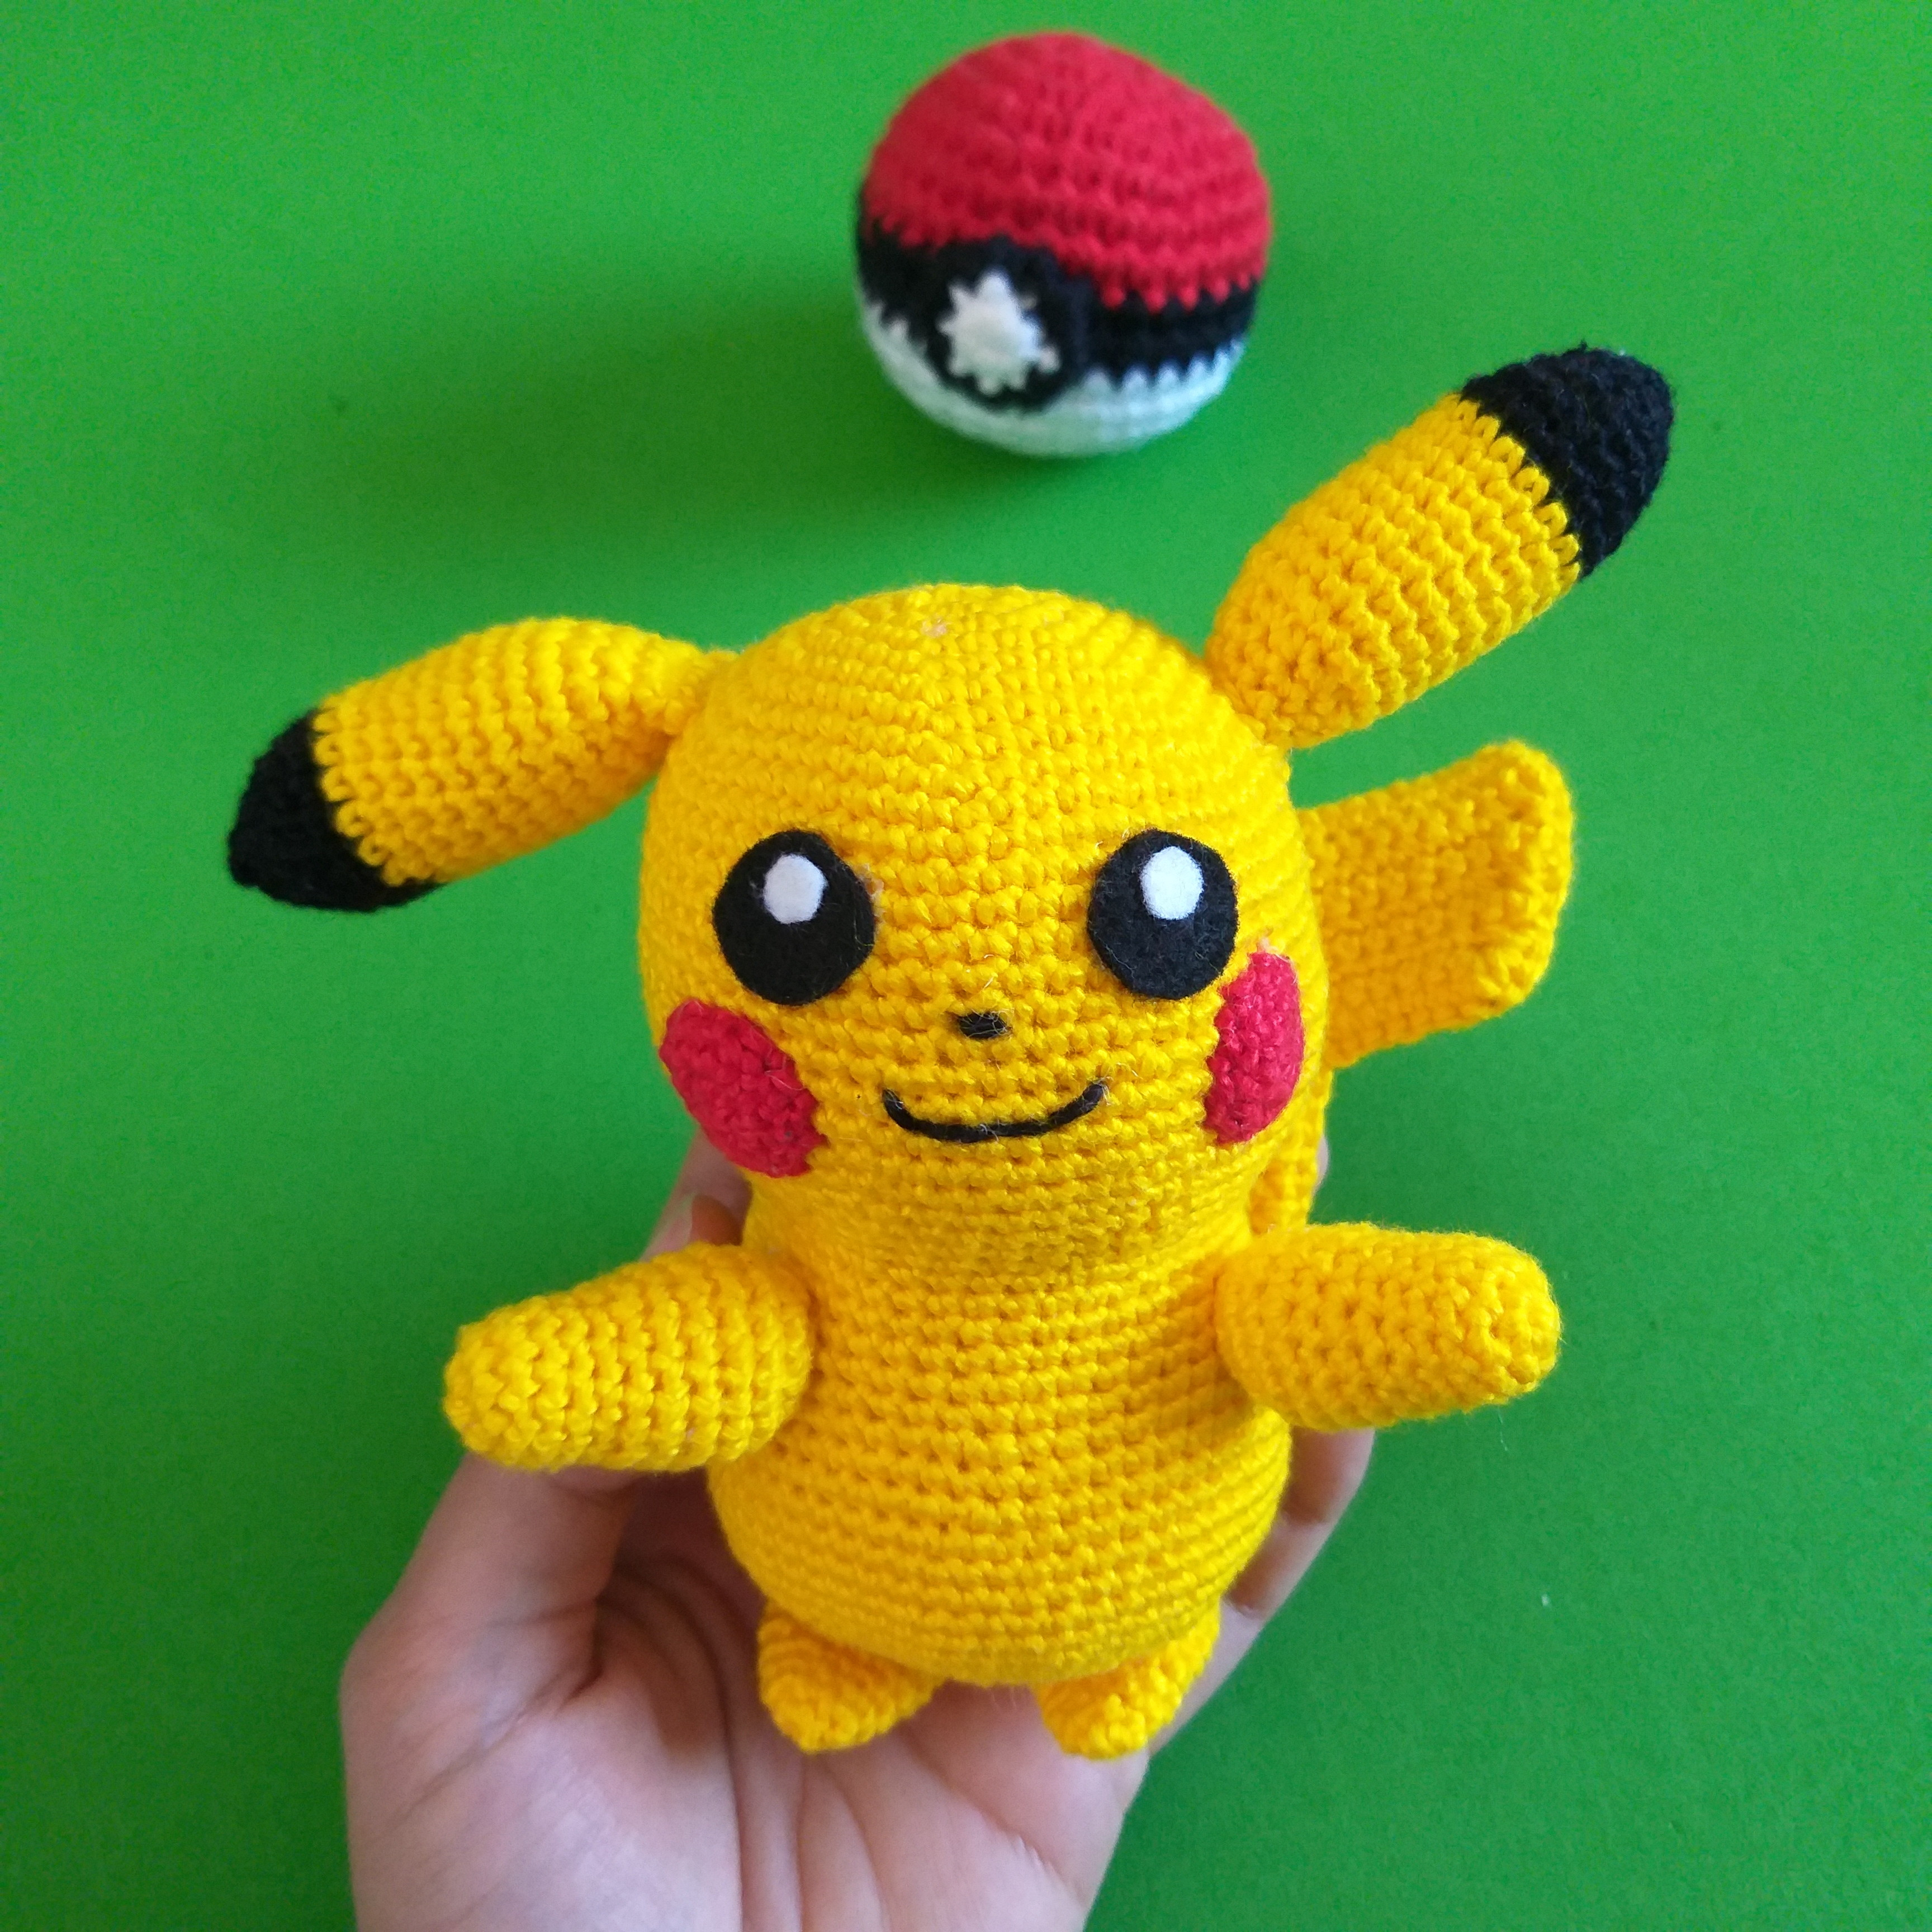 Pikachu (Pokemon) Amigurumi Pattern ⋆ Crochet Kingdom | 3456x3456